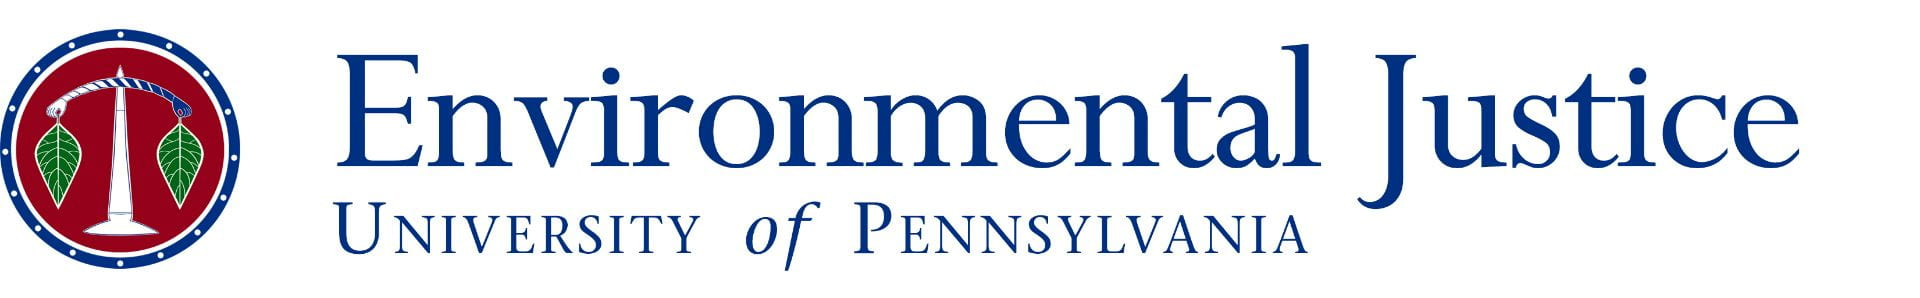 Environmental Justice | University of Pennsylvania